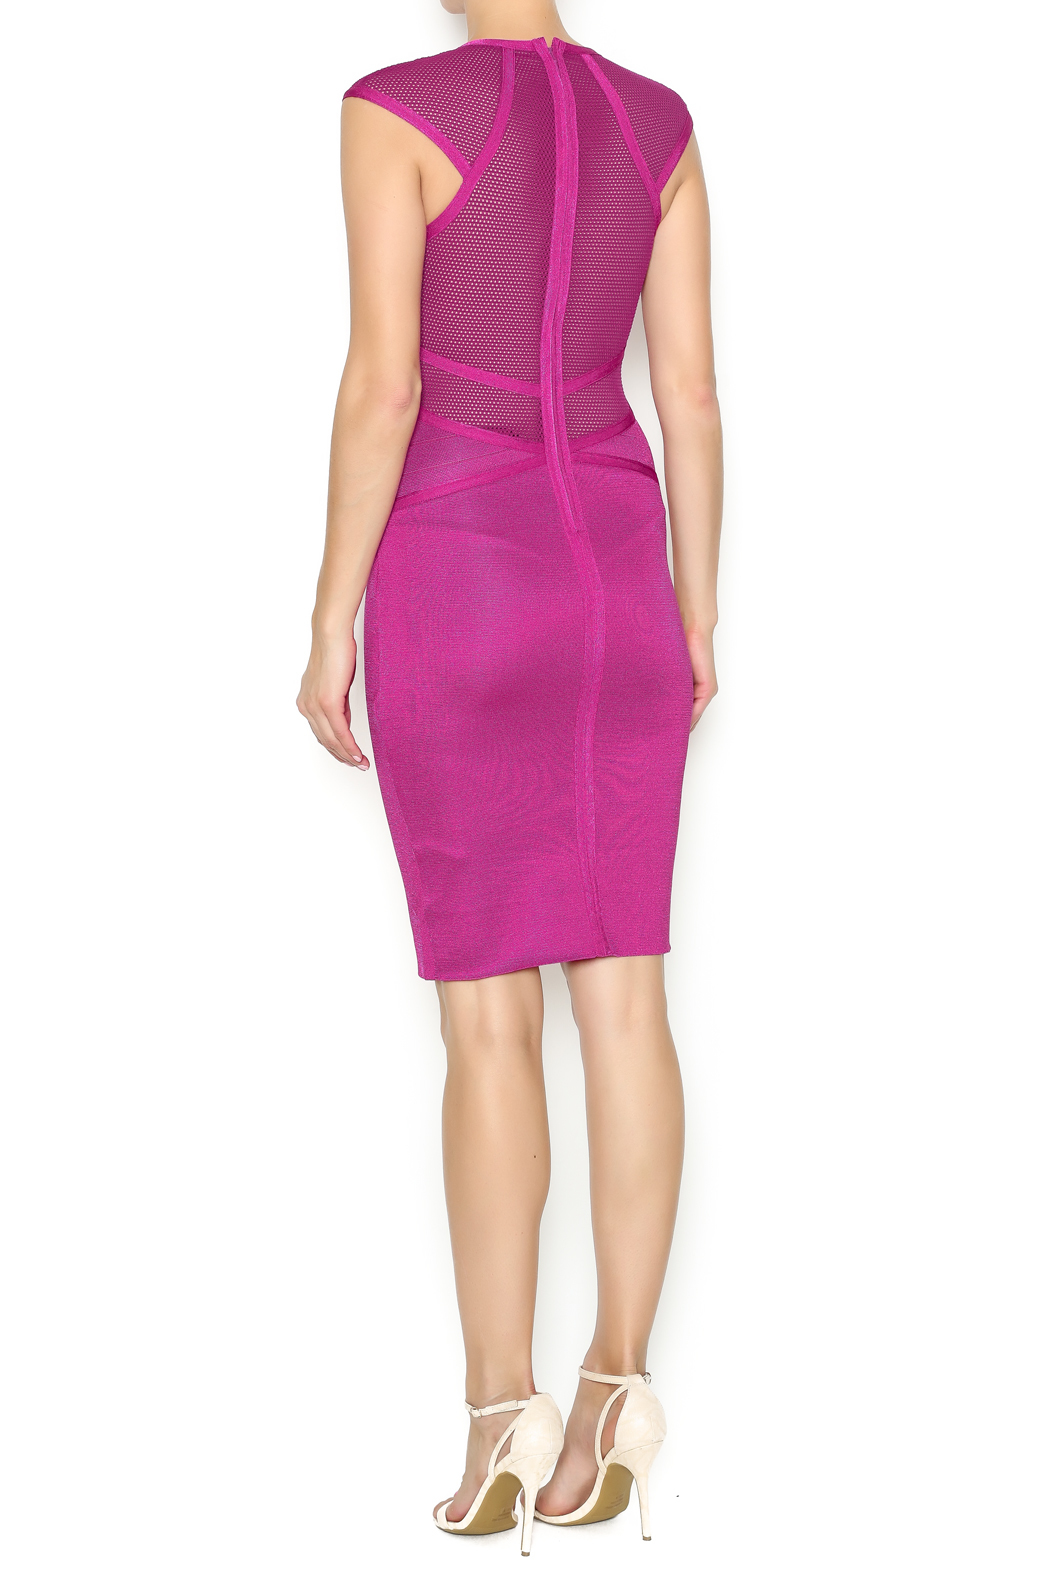 Next Boutique Pink Bodycon Dress From New York By Next Shoptiques